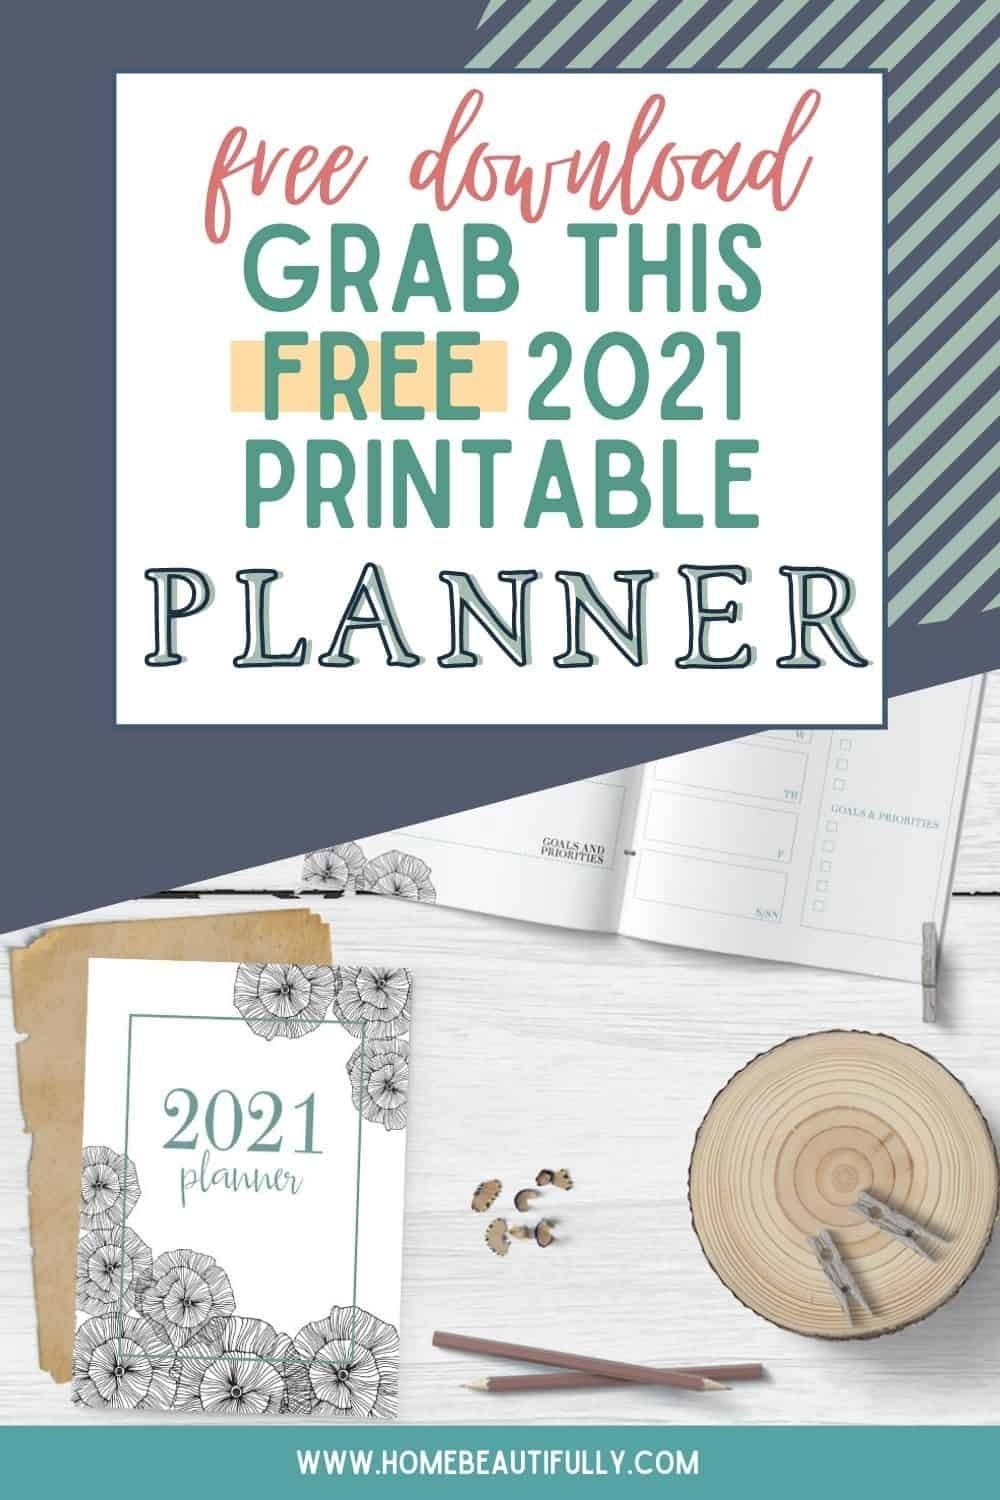 Free 2021 Printable Planner Get Organized Now! in 2020